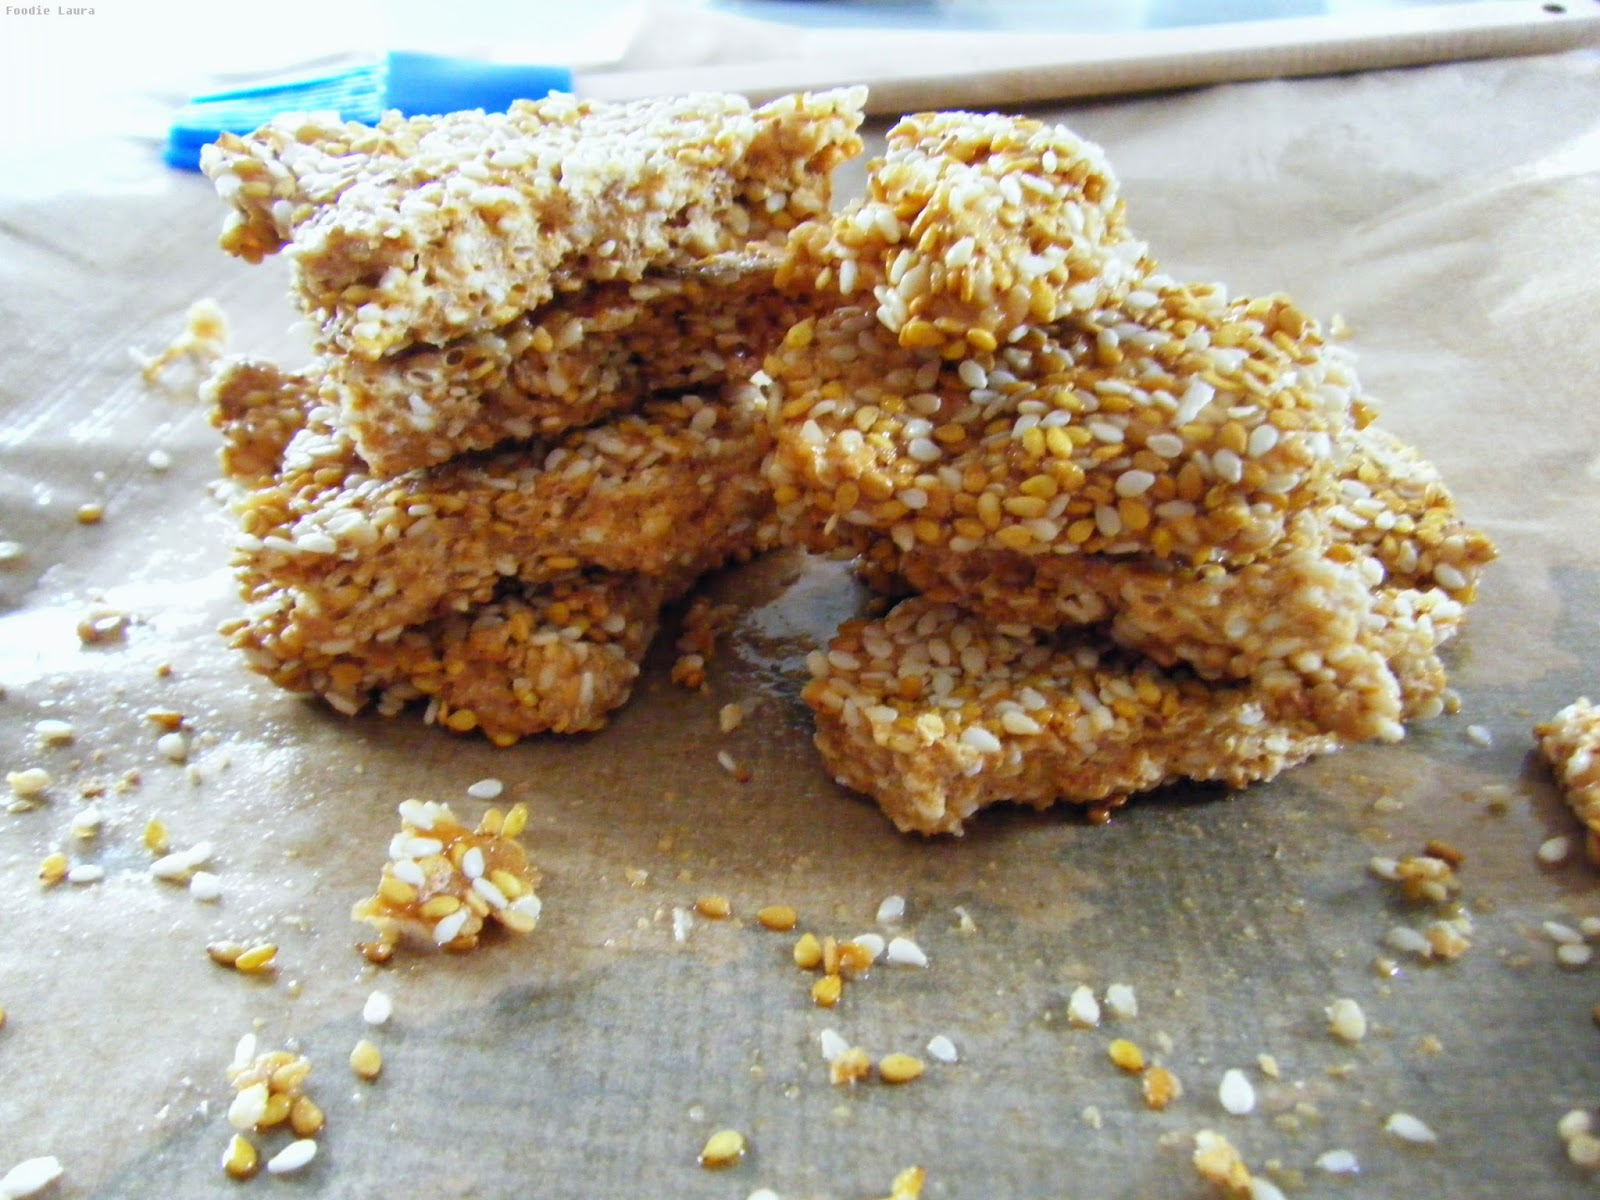 sesame brittle this sesame brittle broken up into shard and